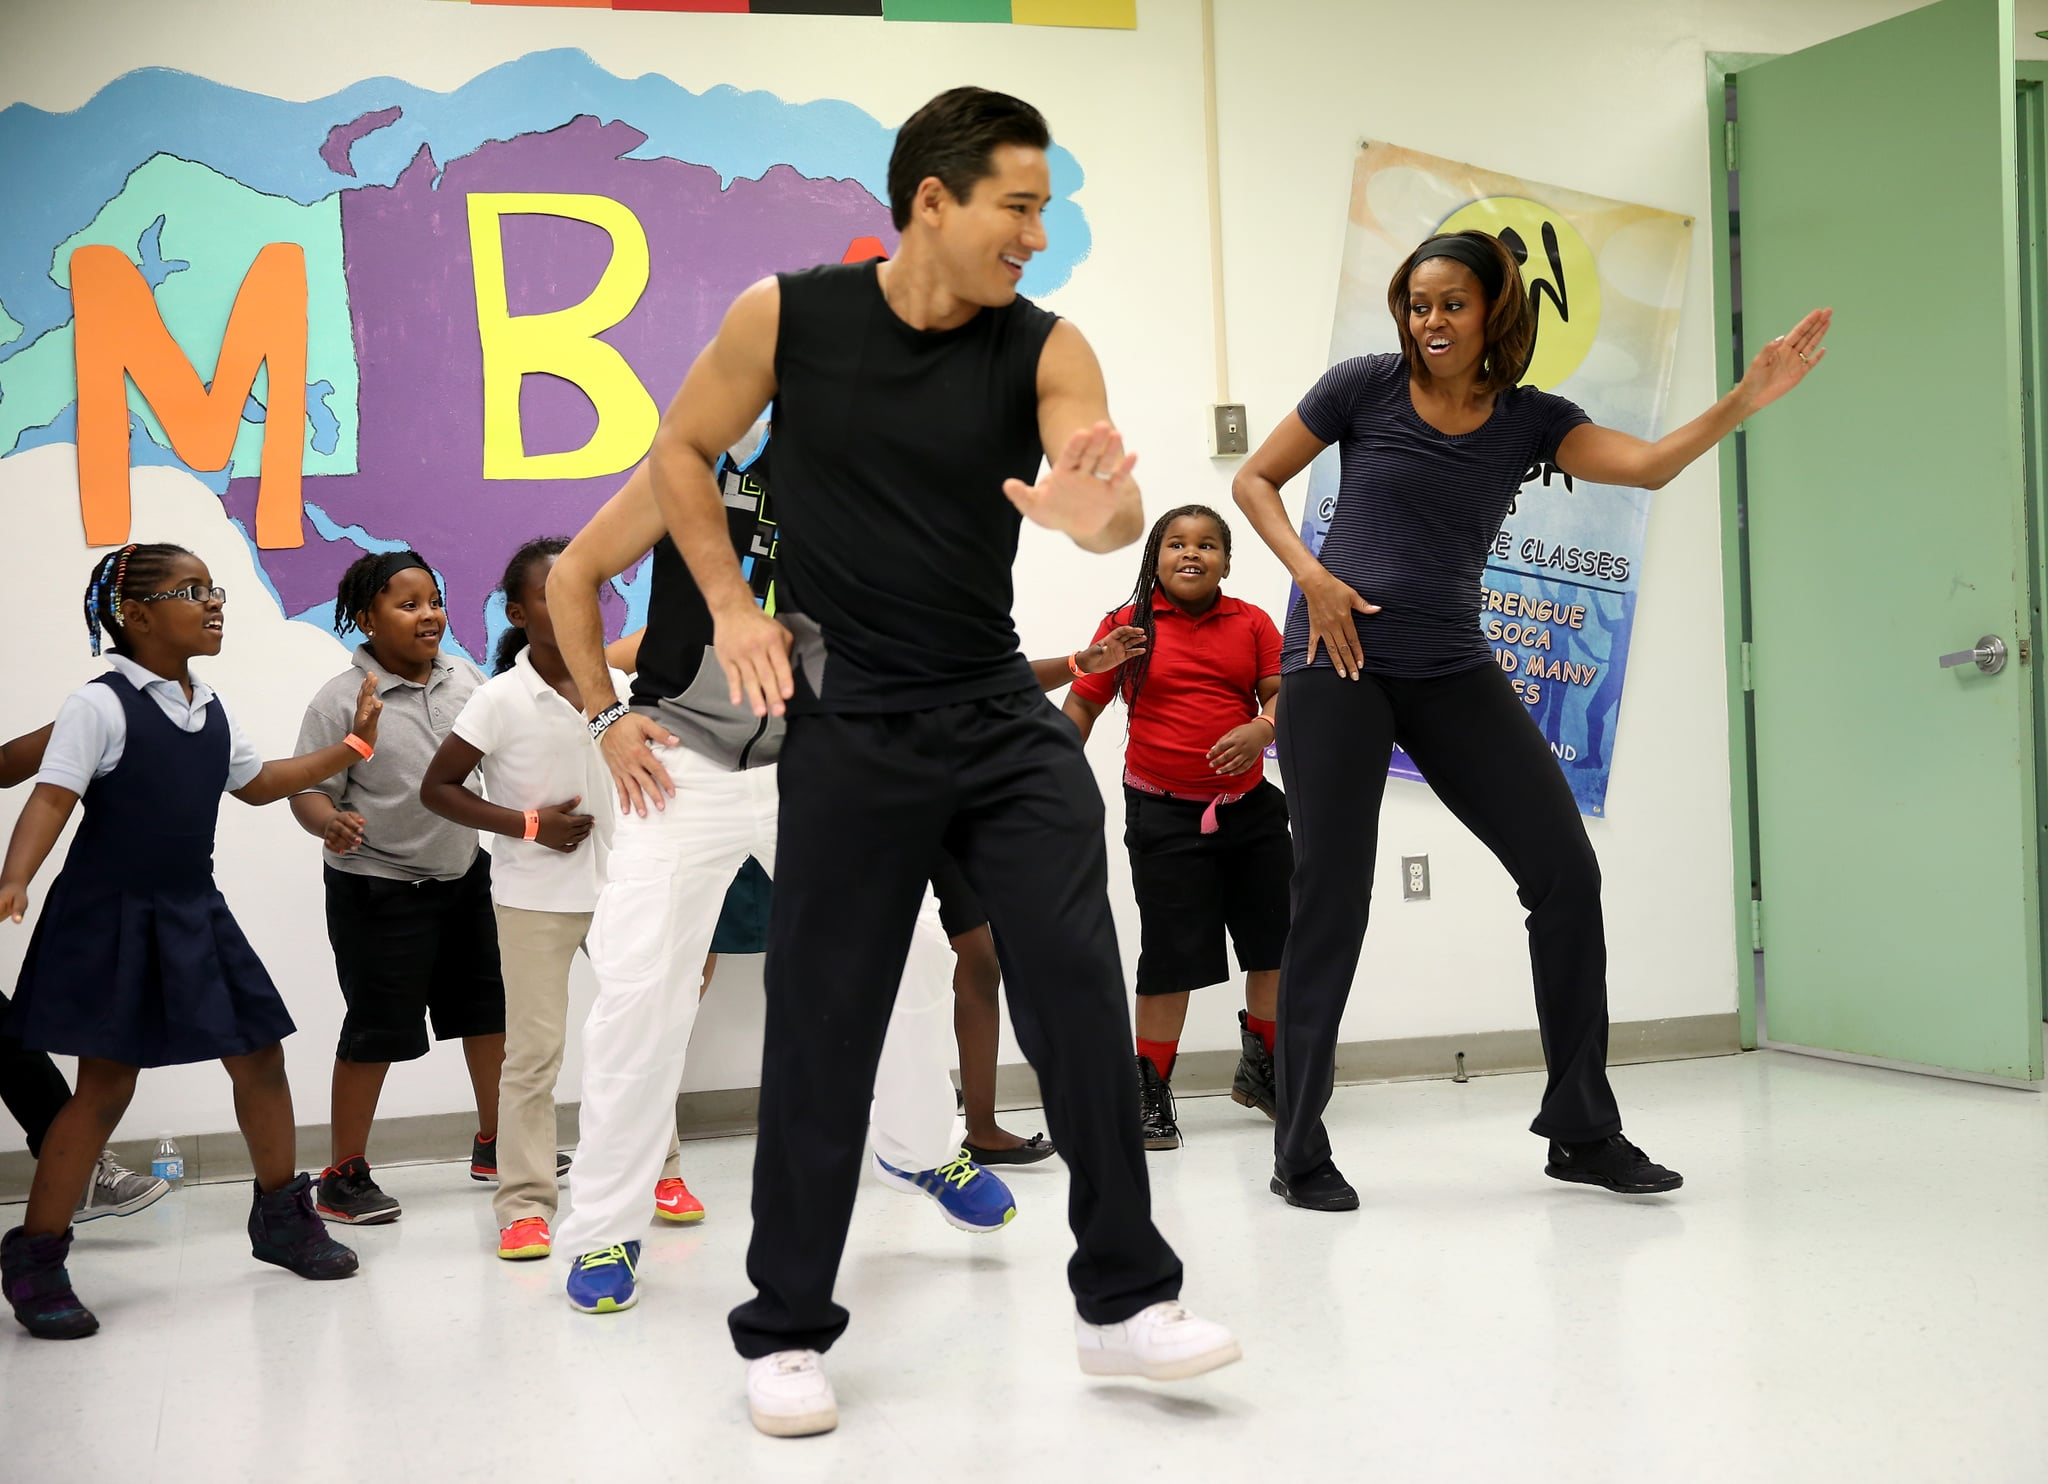 When She Did Zumba With Mario Lopez And Young Girls Confirming